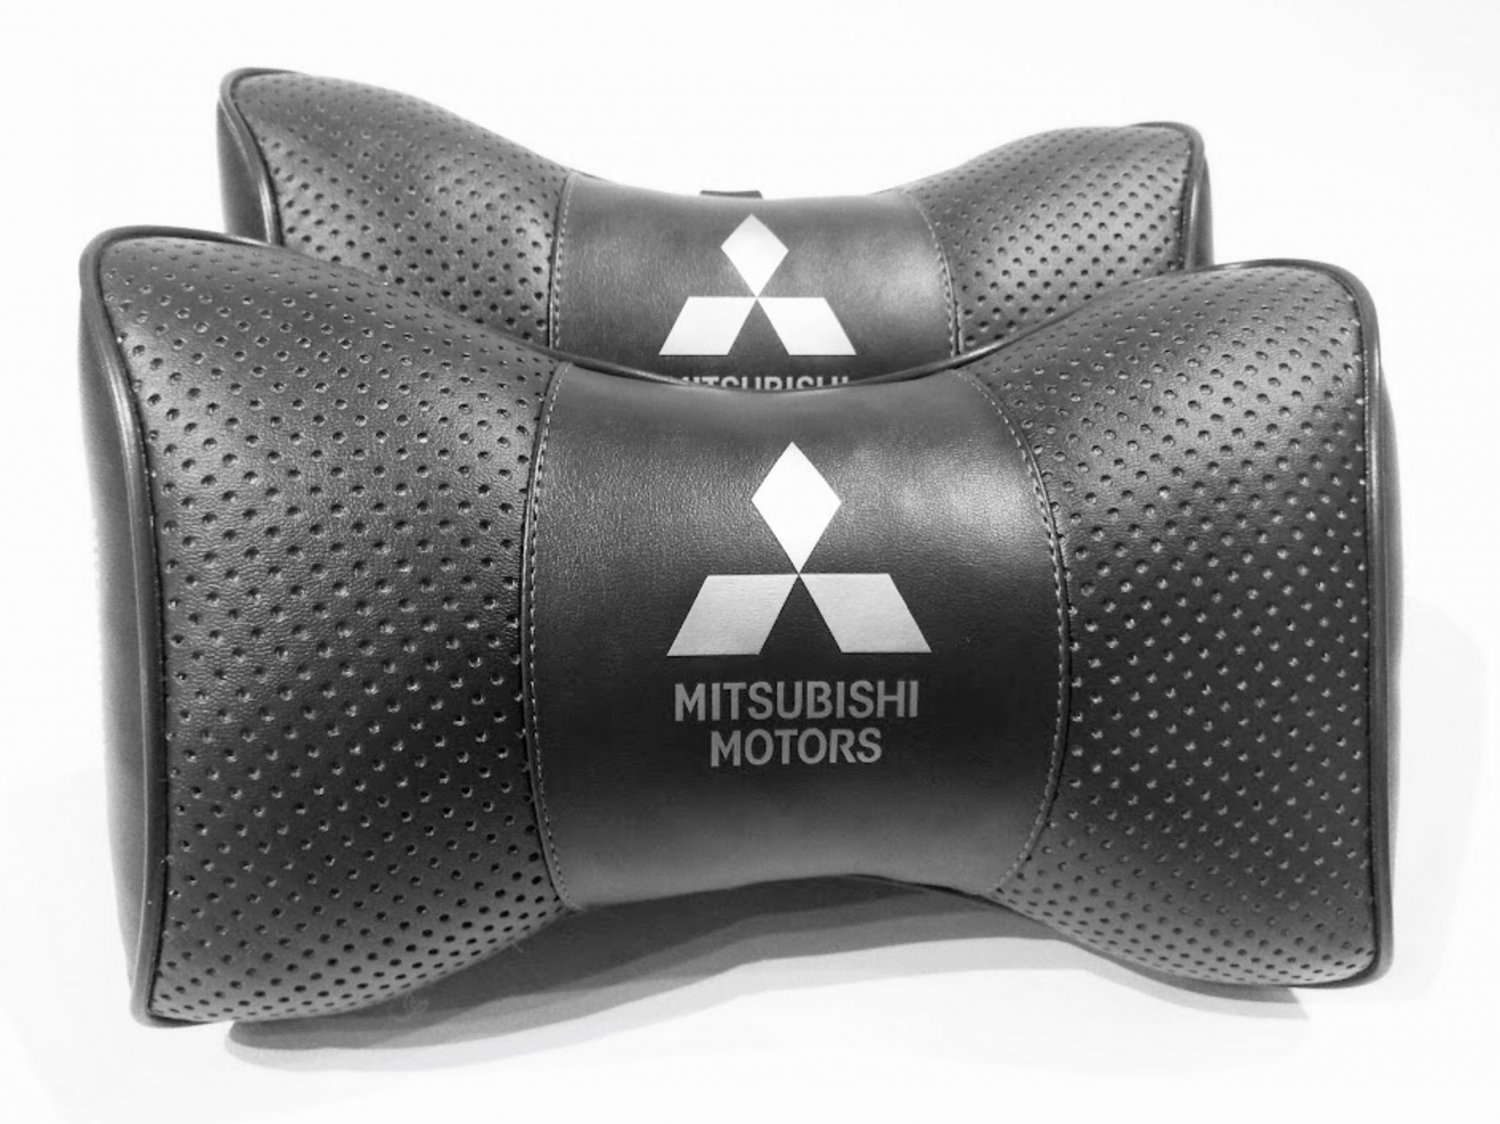 Auto 2pcs Headrest Pillow Cushion Logo Mitsubishi PU Leather Breathable Pilow